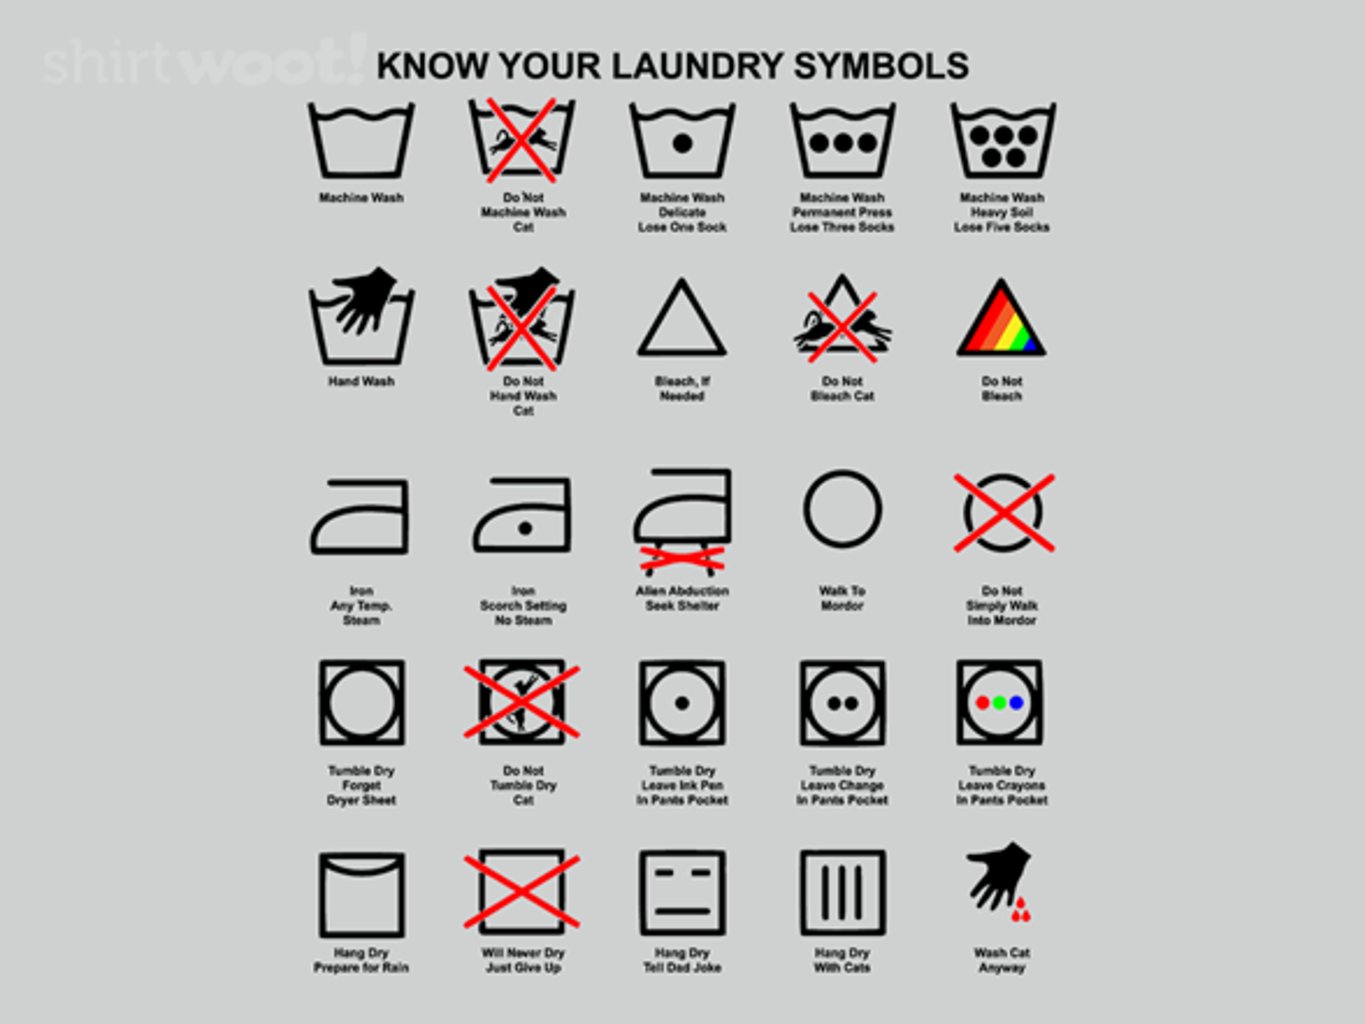 Woot!: Know Your Laundry Symbols